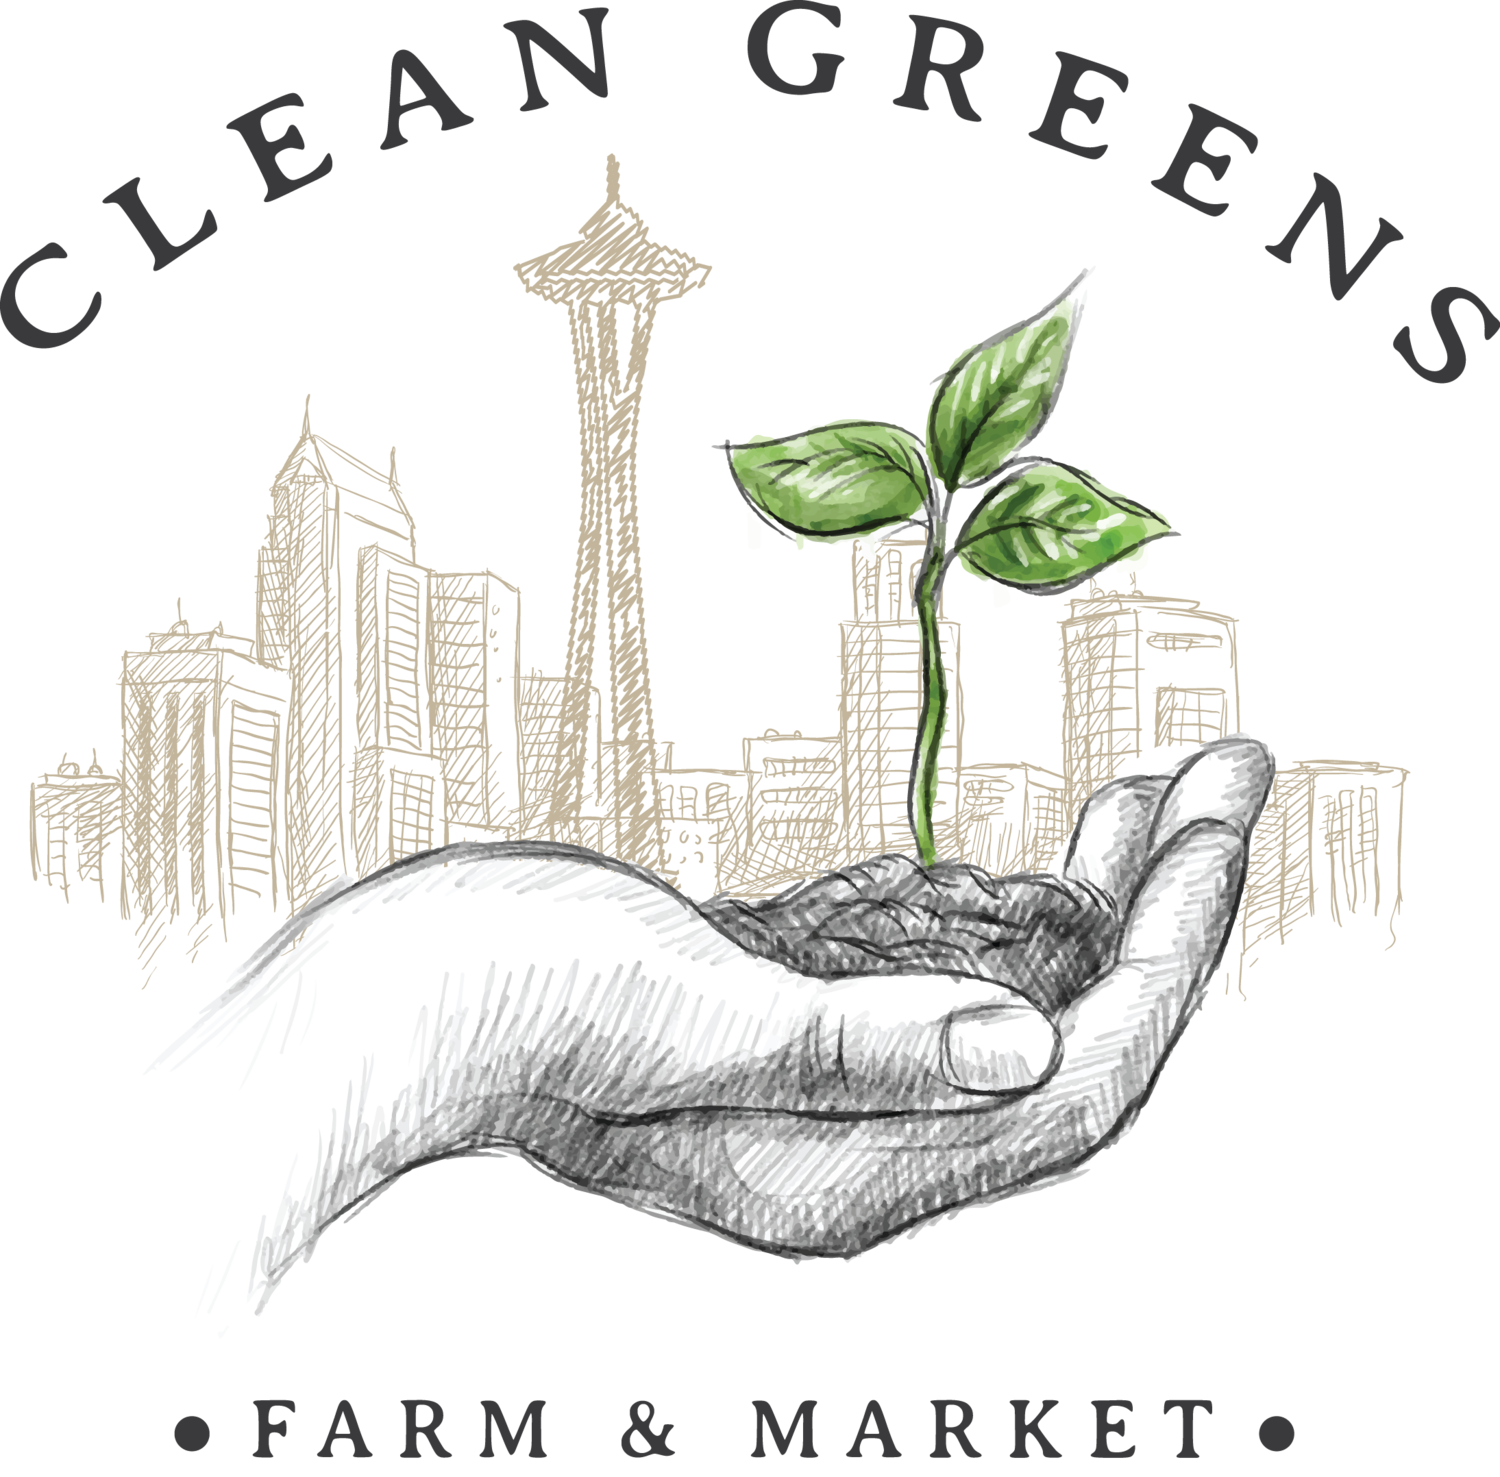 Clean Greens Farm & Market